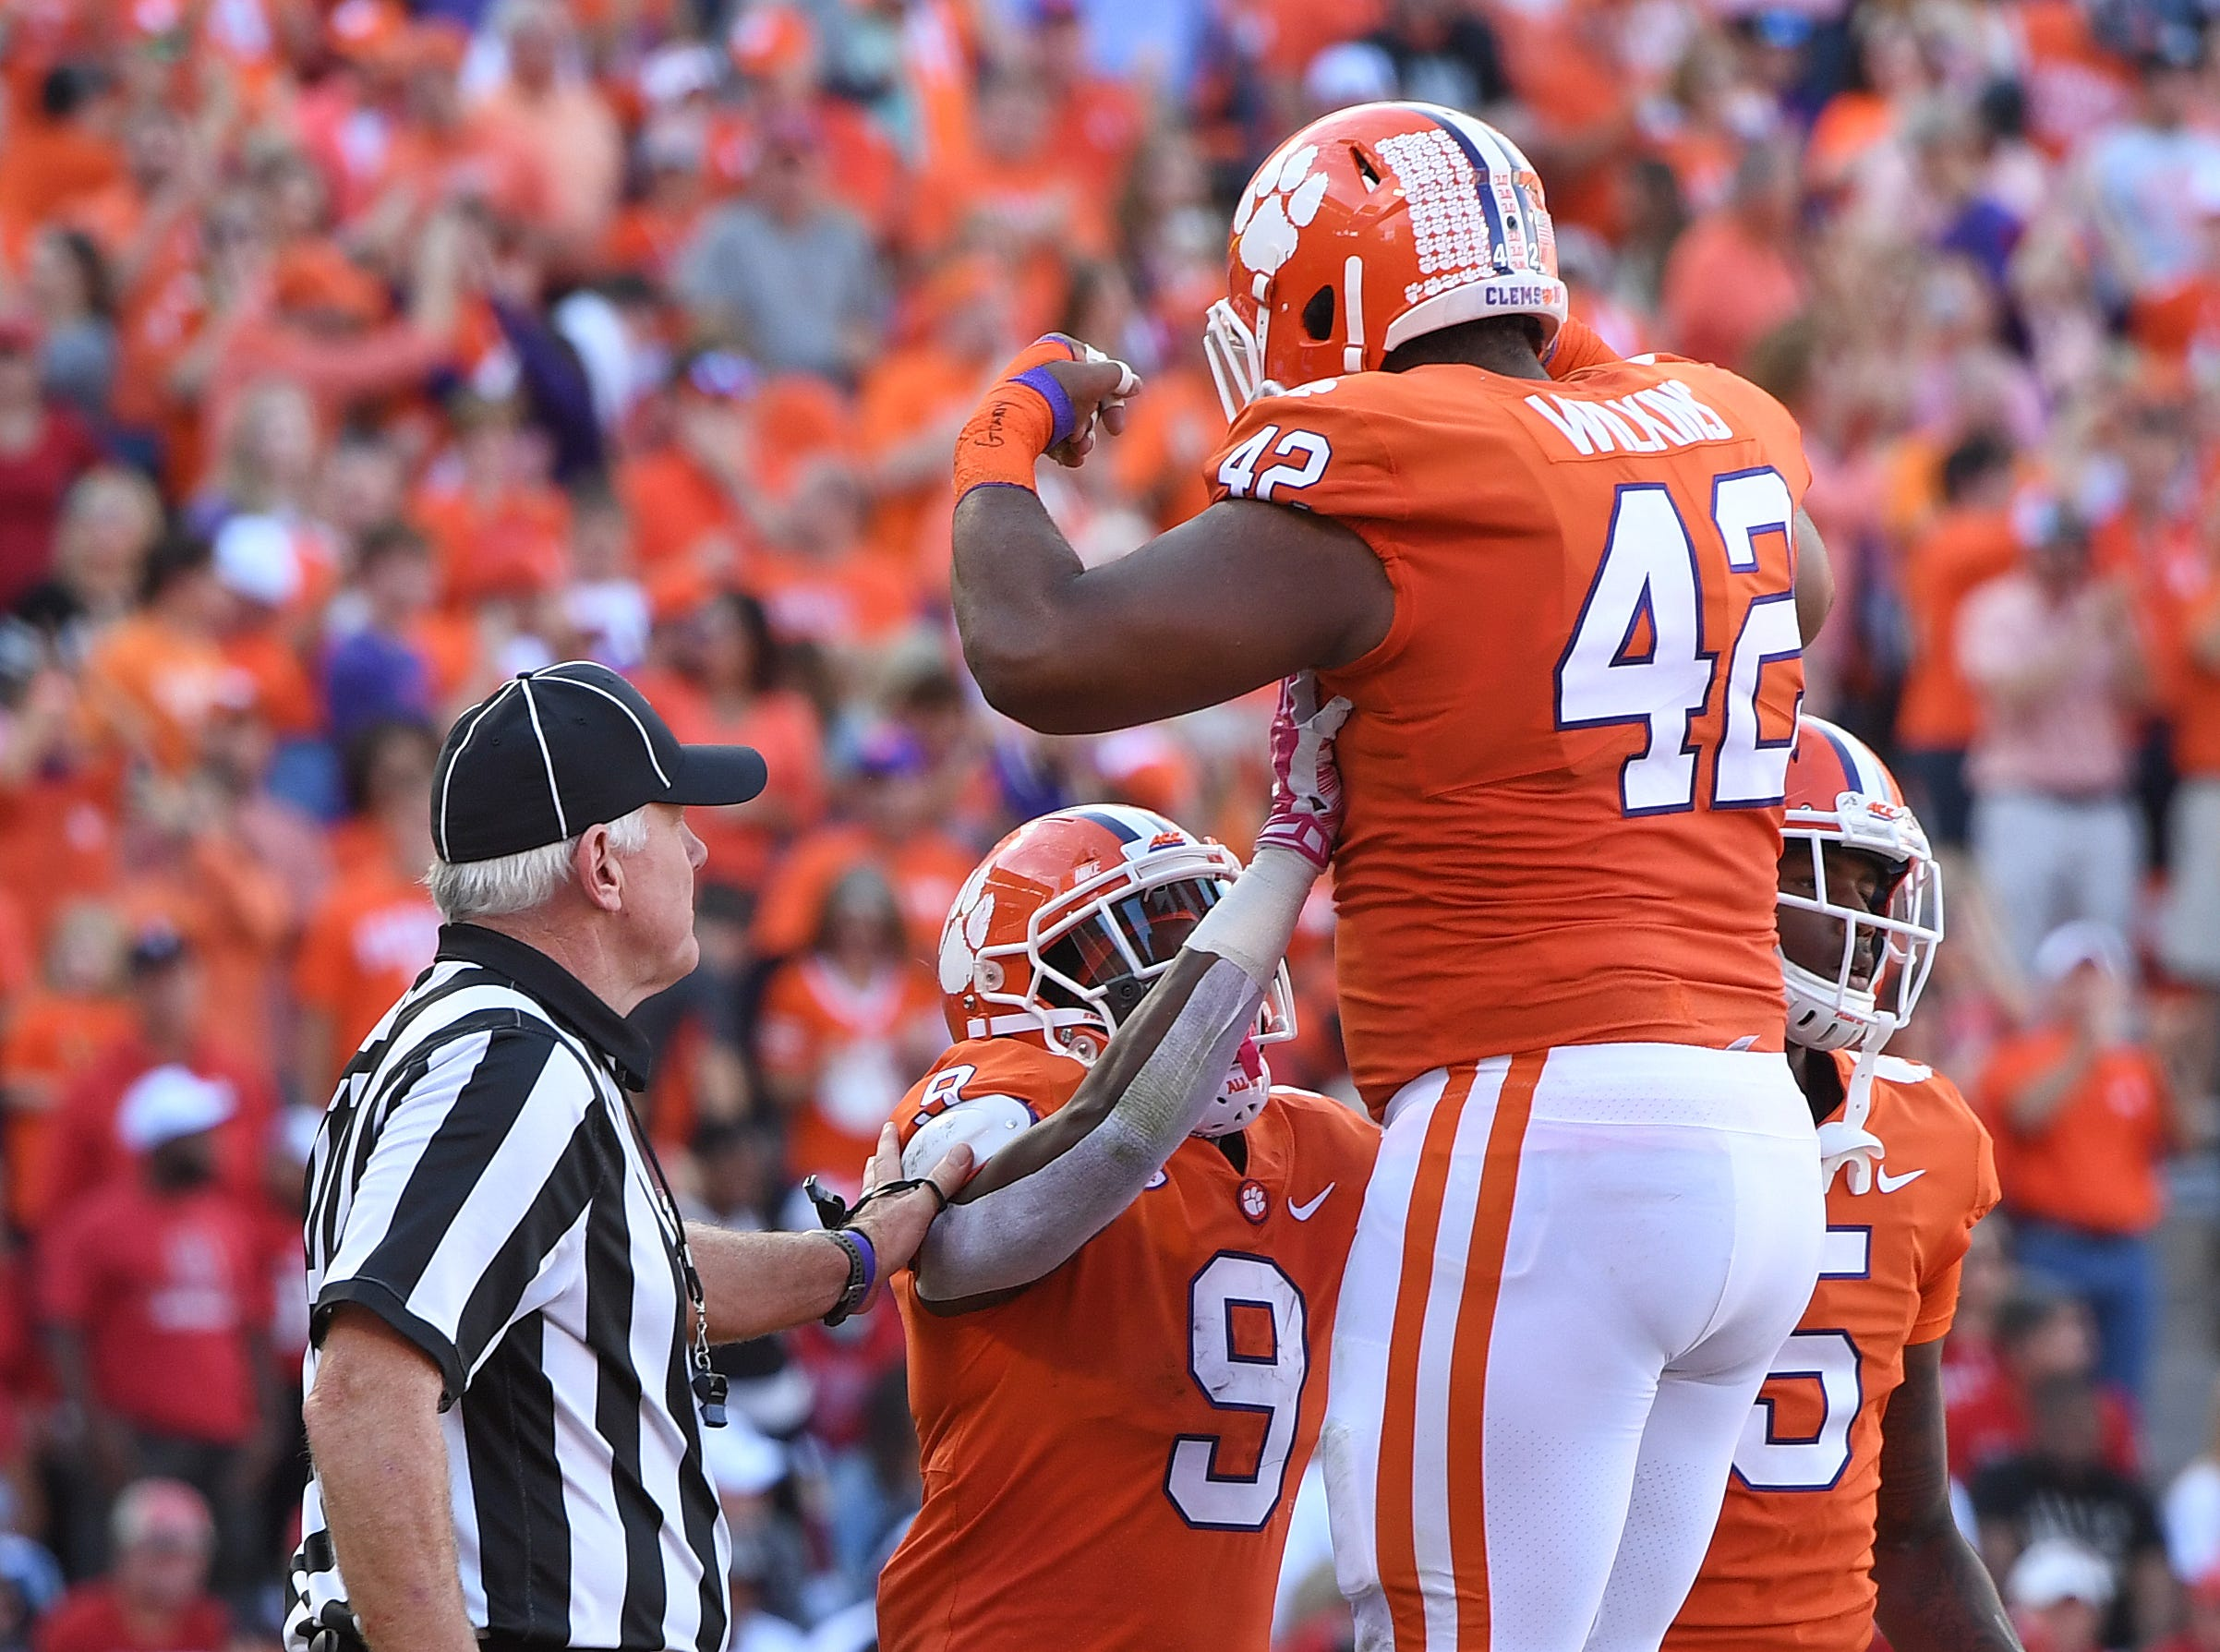 Clemson running back Travis Etienne (9) celebrates with defensive lineman Christian Wilkins (42) after scoring against NC State during the 2nd quarter Saturday, October 20, 2018 at Clemson's Memorial Stadium.